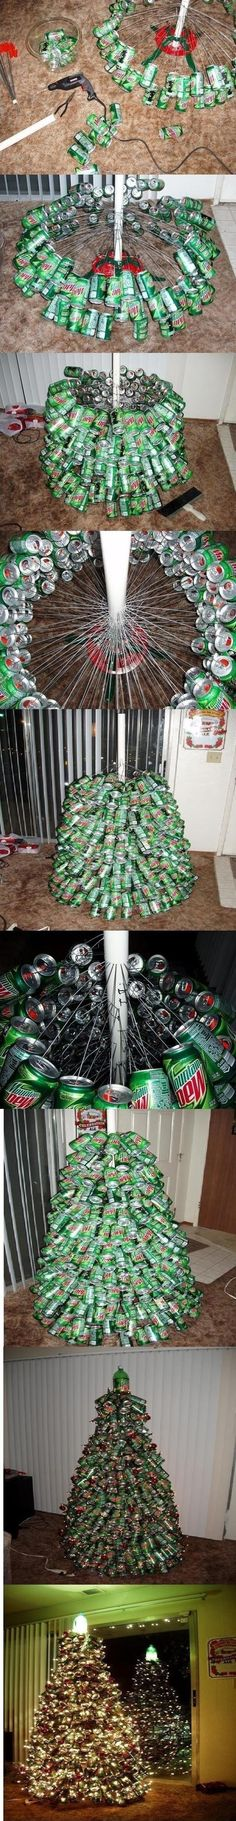 Mountain Dew Christmas Tree...now where am I supposed to find all those mountain dew cans - -